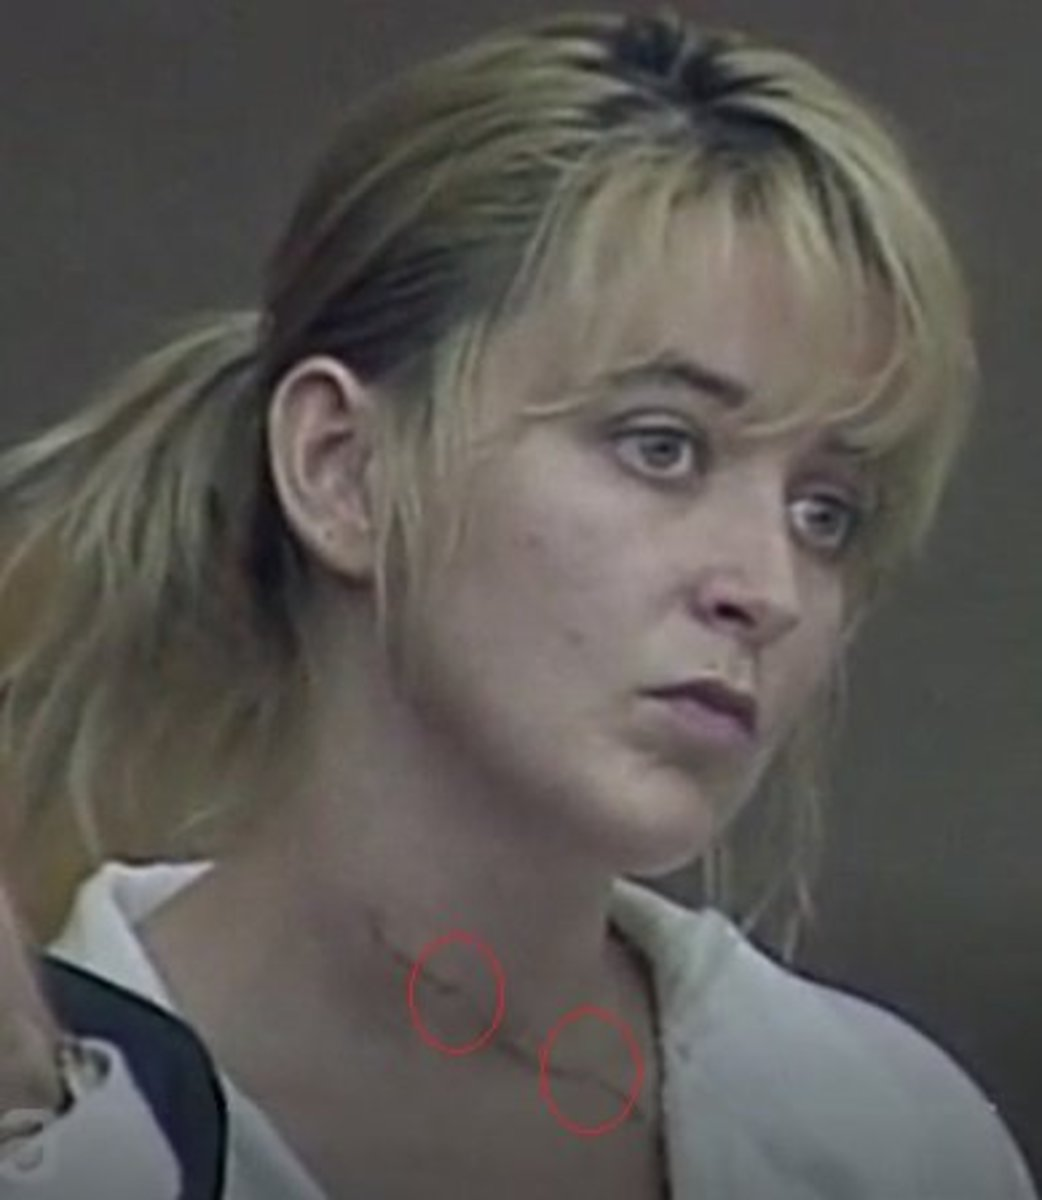 Forensic pathologists have noted that Darlie's neck wound appeared to have at least 2 hesitation areas and it was crooked, indicating self infliction; where if this were a slash during a fight, it would most likely be a nonstop straight laceration.